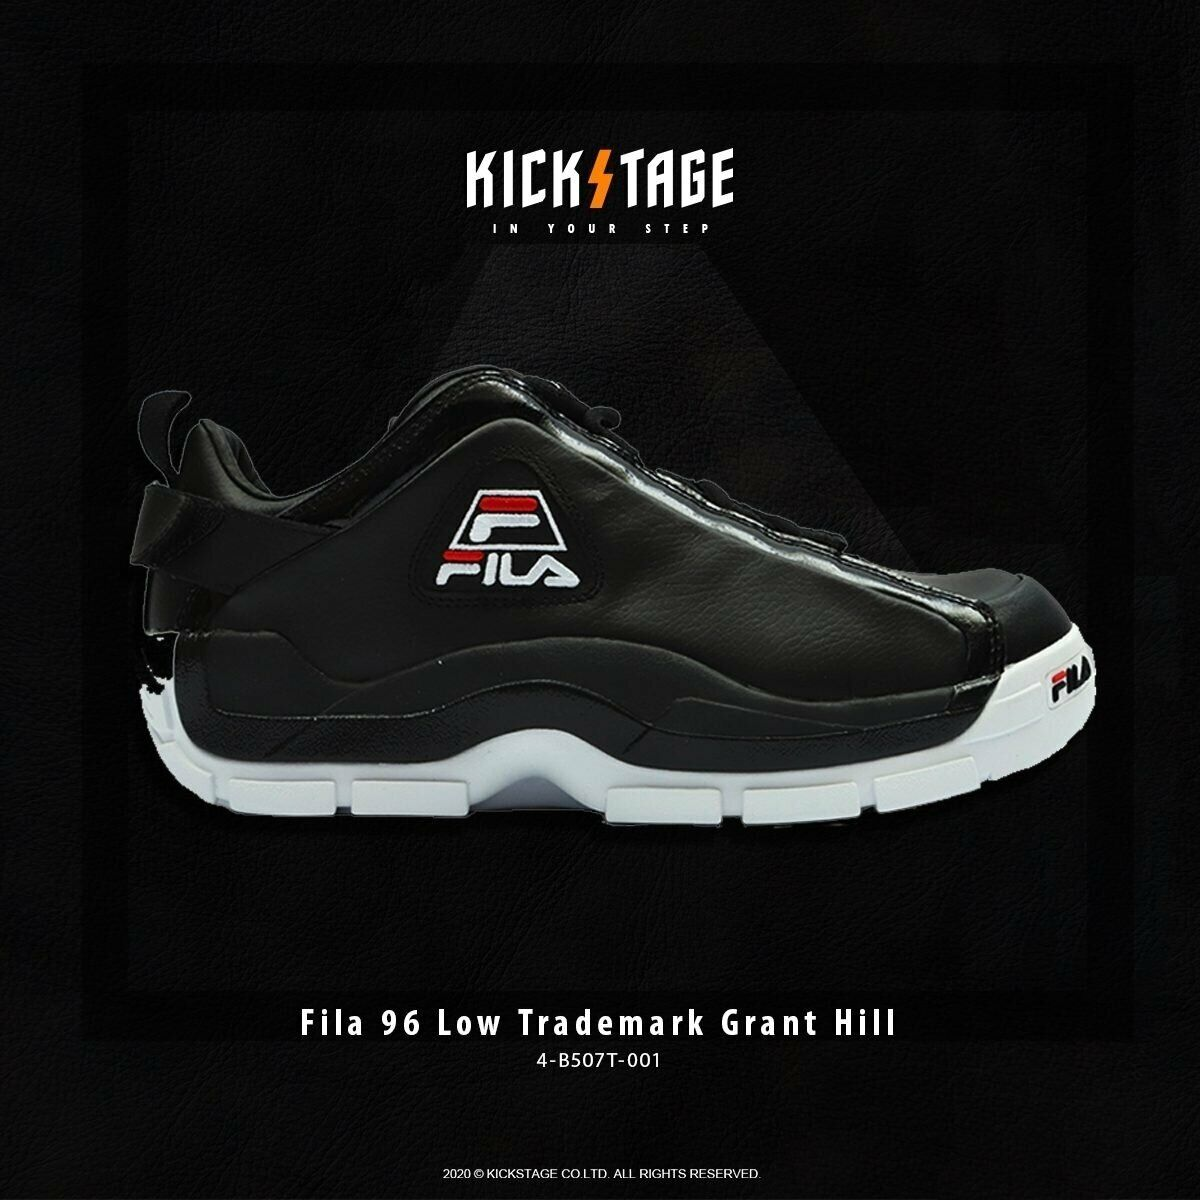 Fila 96 Low Trademark Grant Hill White Navy Red Men Basketball Shoes Sneakers